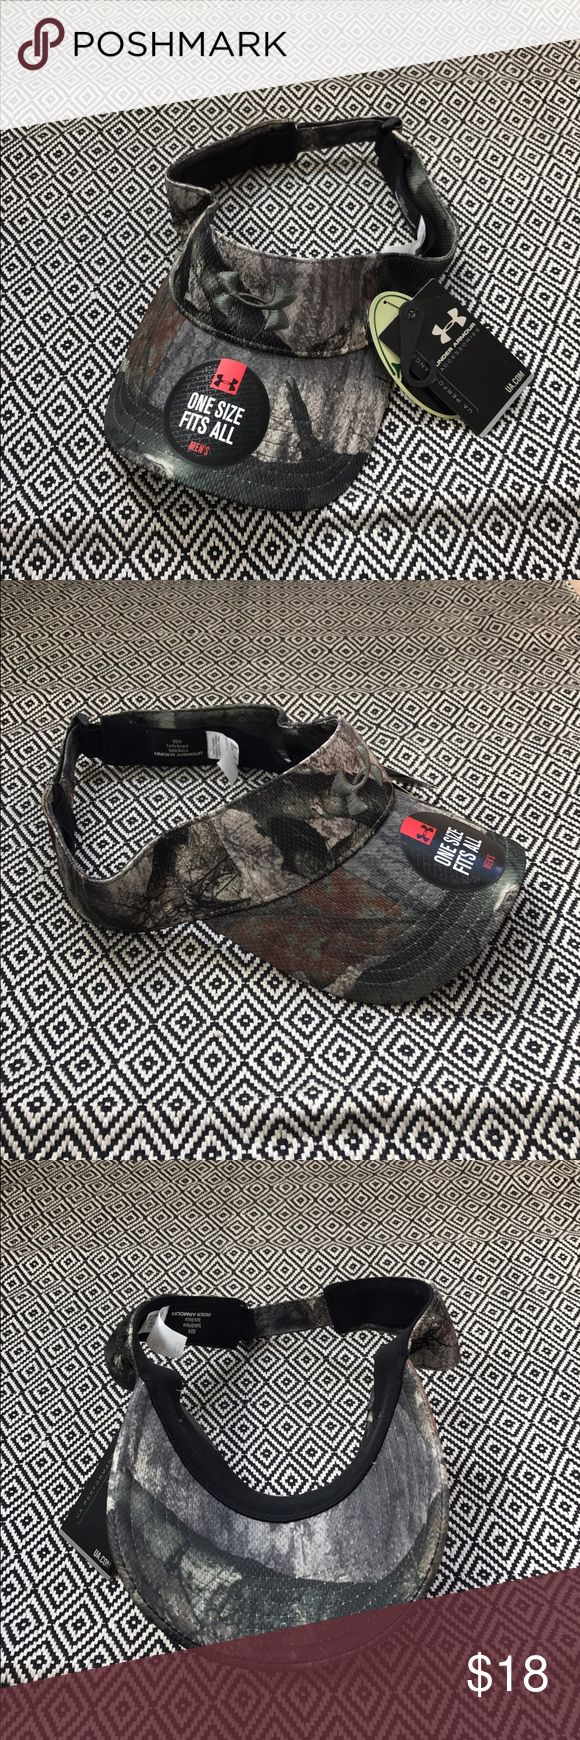 Under Armour Camouflage Camo Visor Hat Brand new with tags. One size men's! Make me an offer! Under Armour Accessories Hats